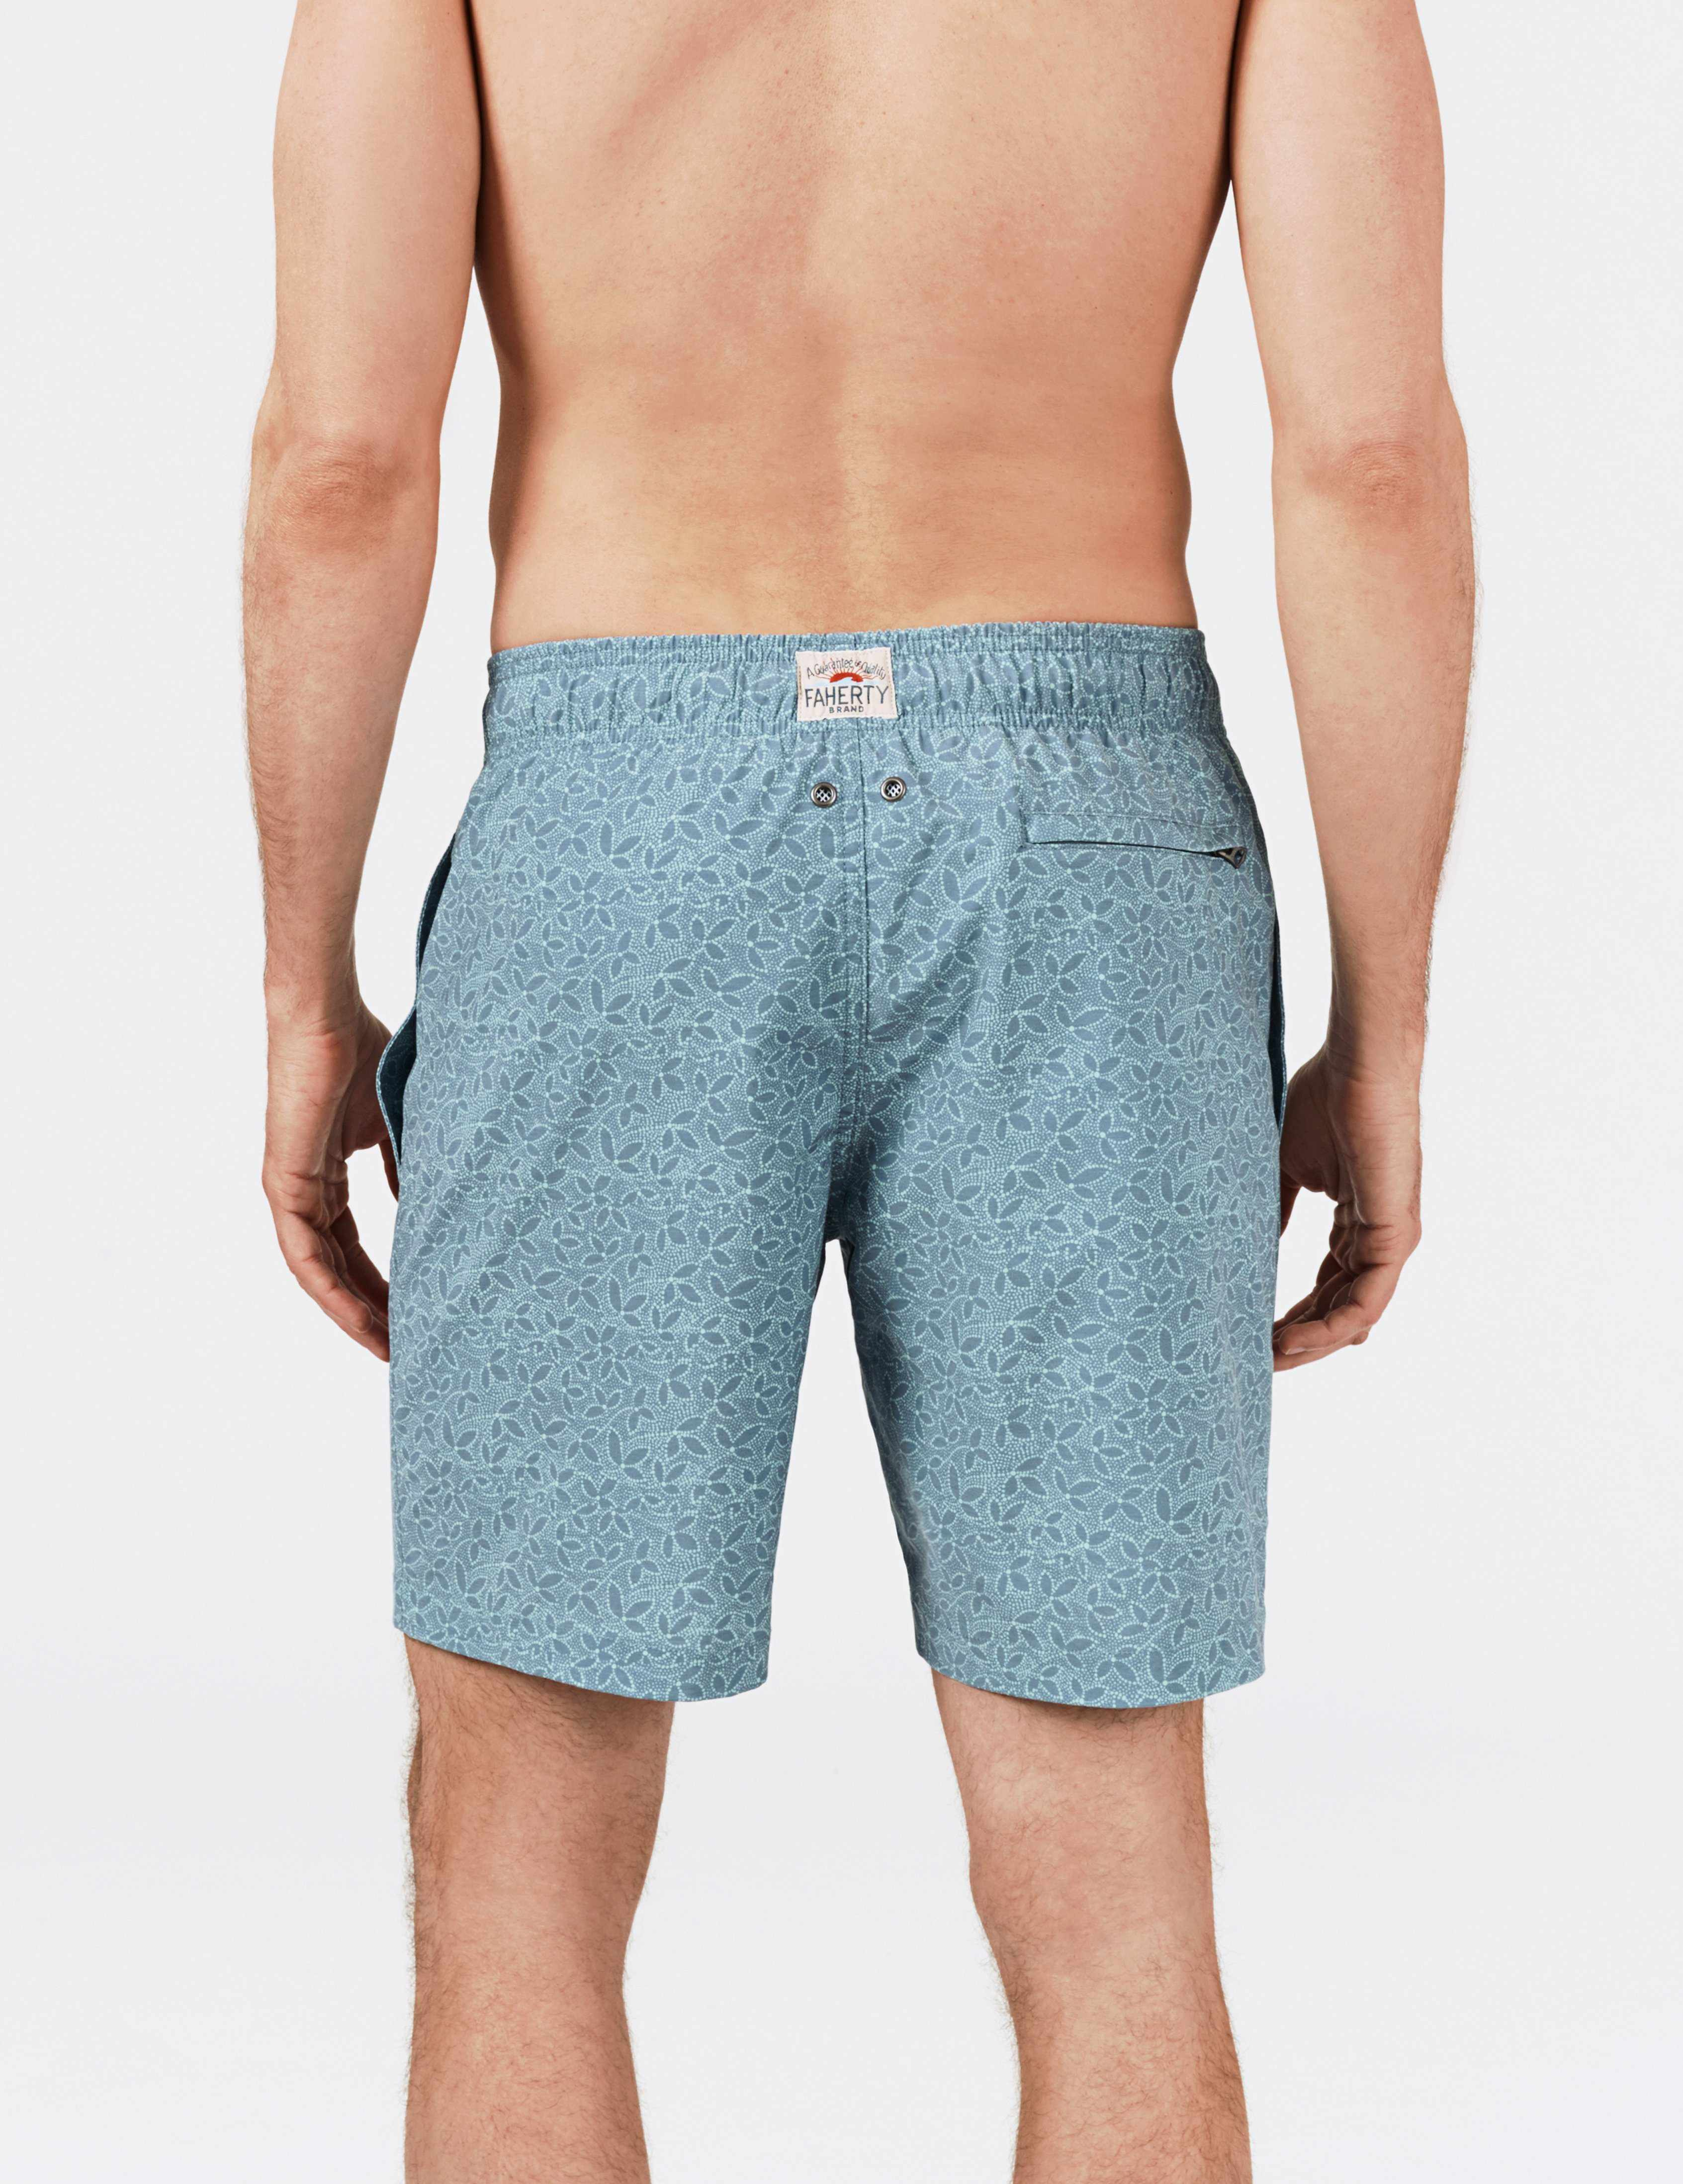 Beacon Trunk - Teal Ivy